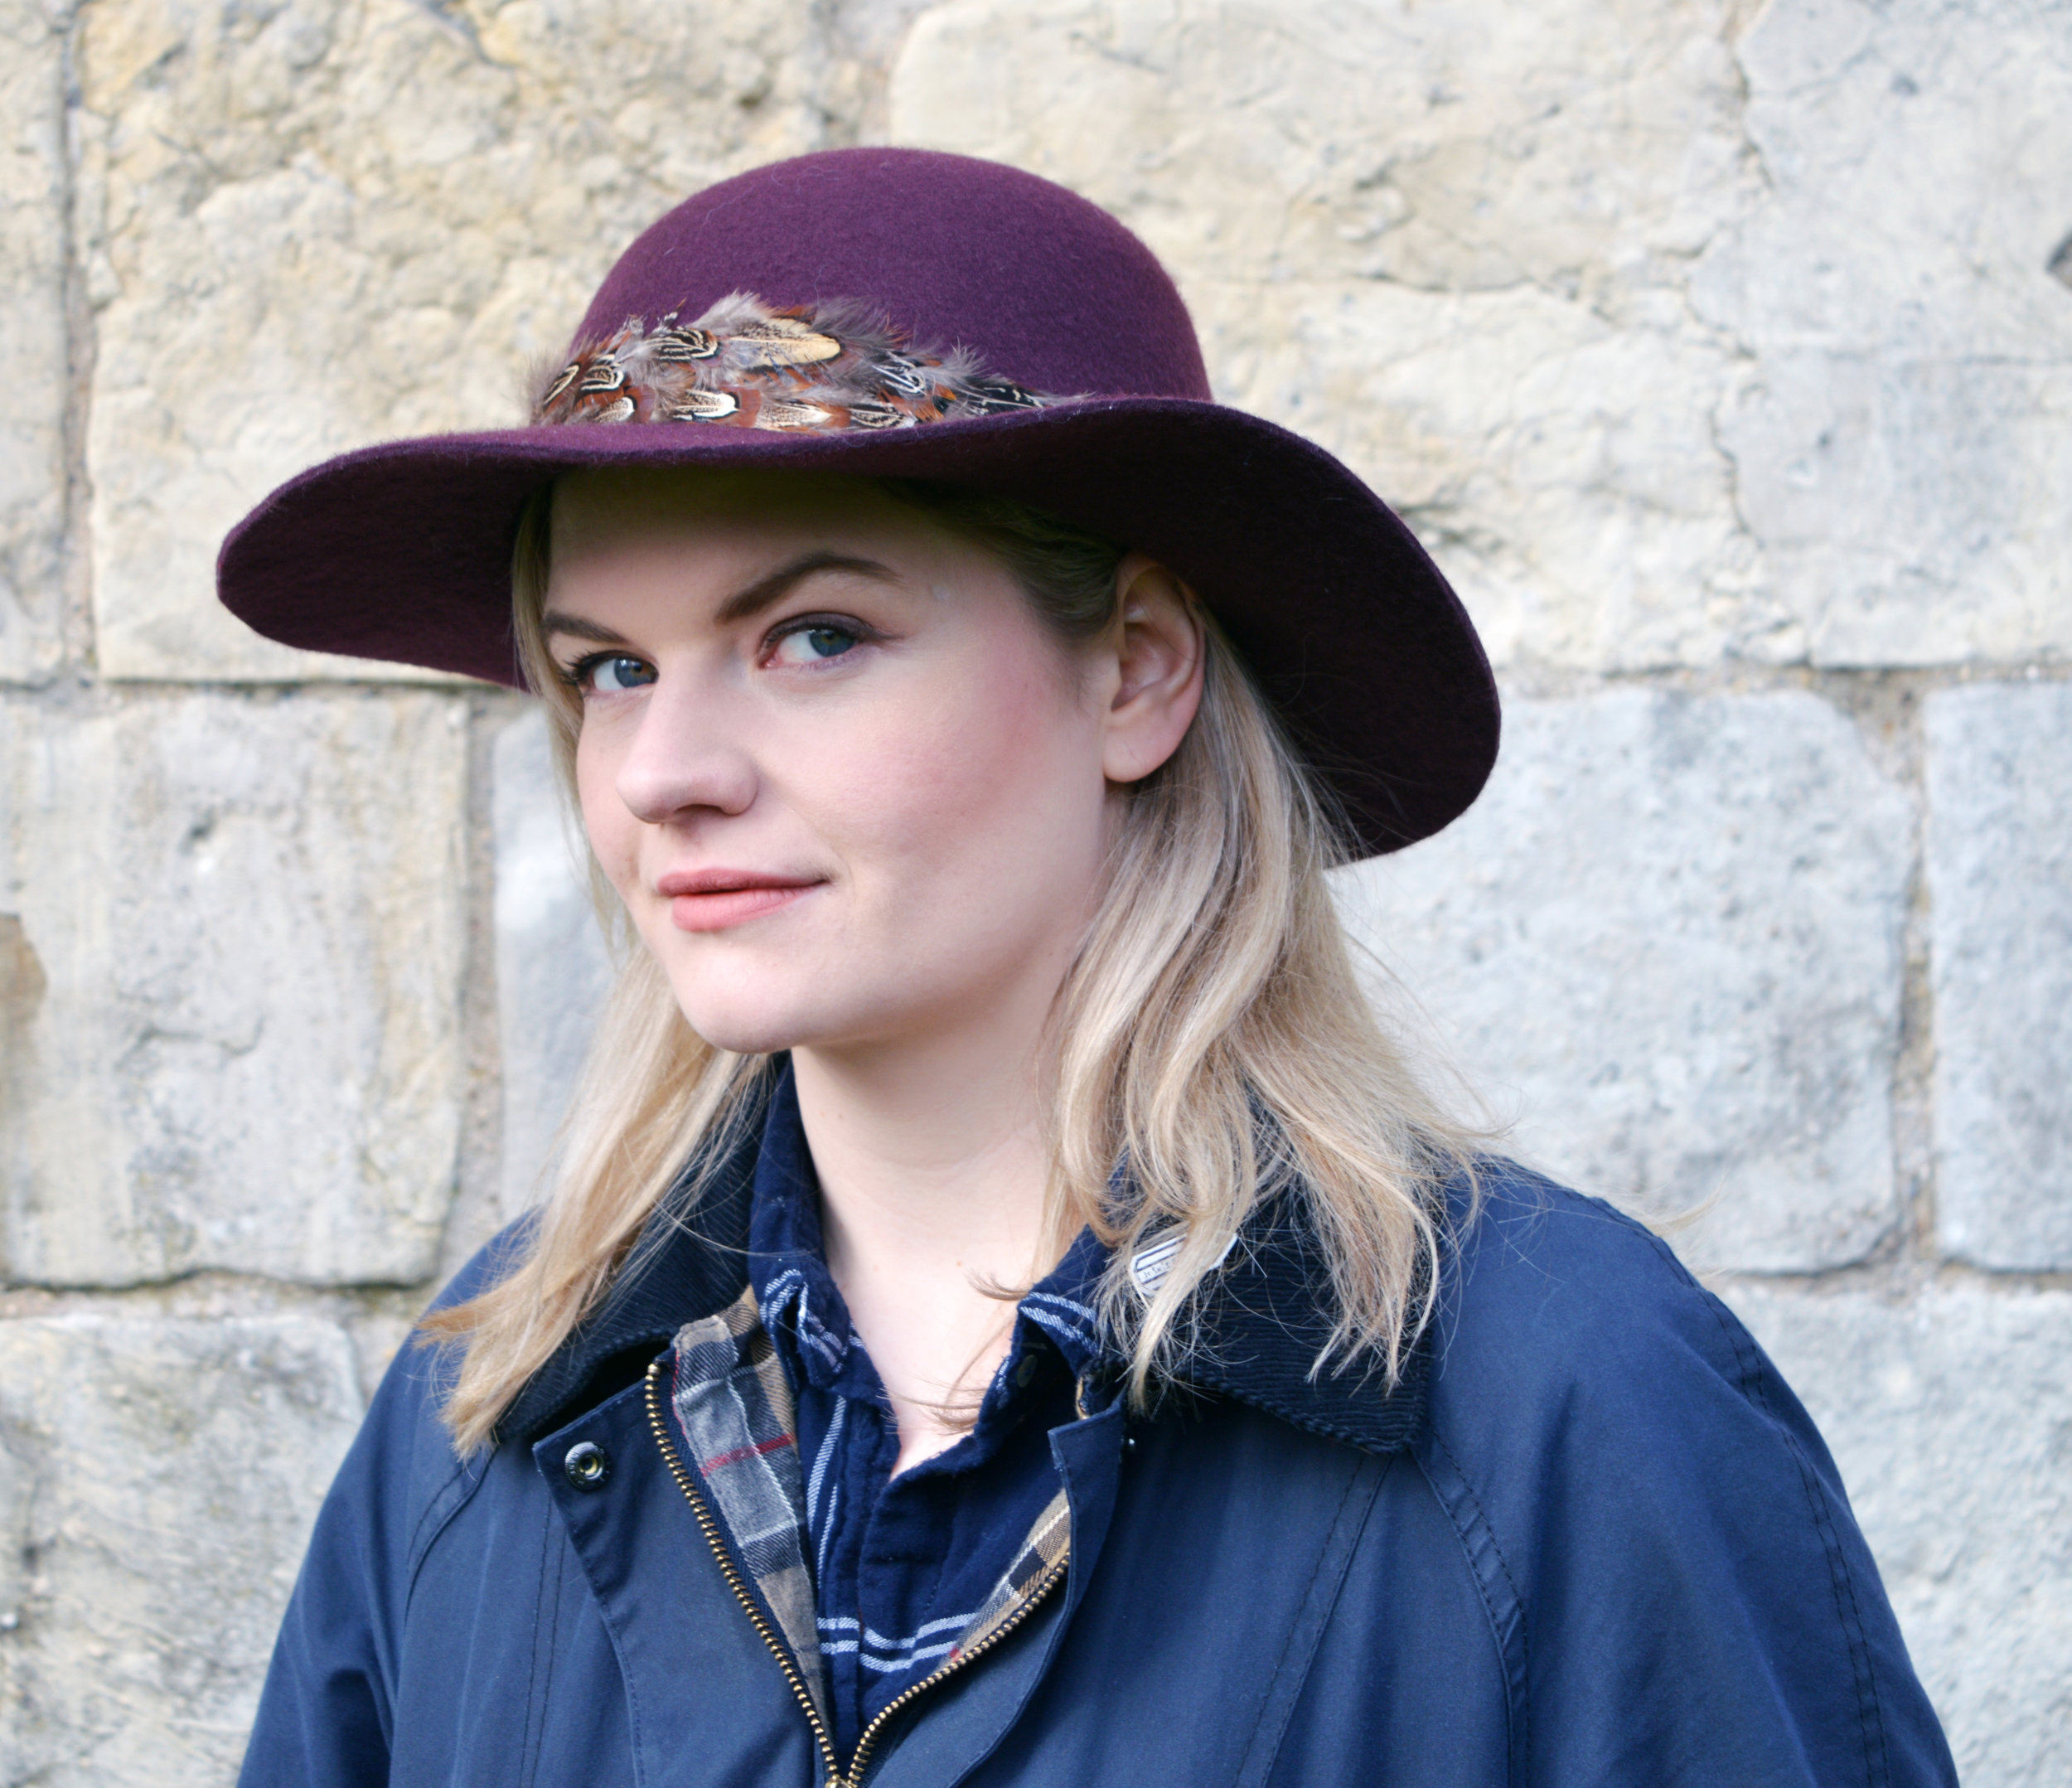 Barbour Ladies Jacket and Plum Hat